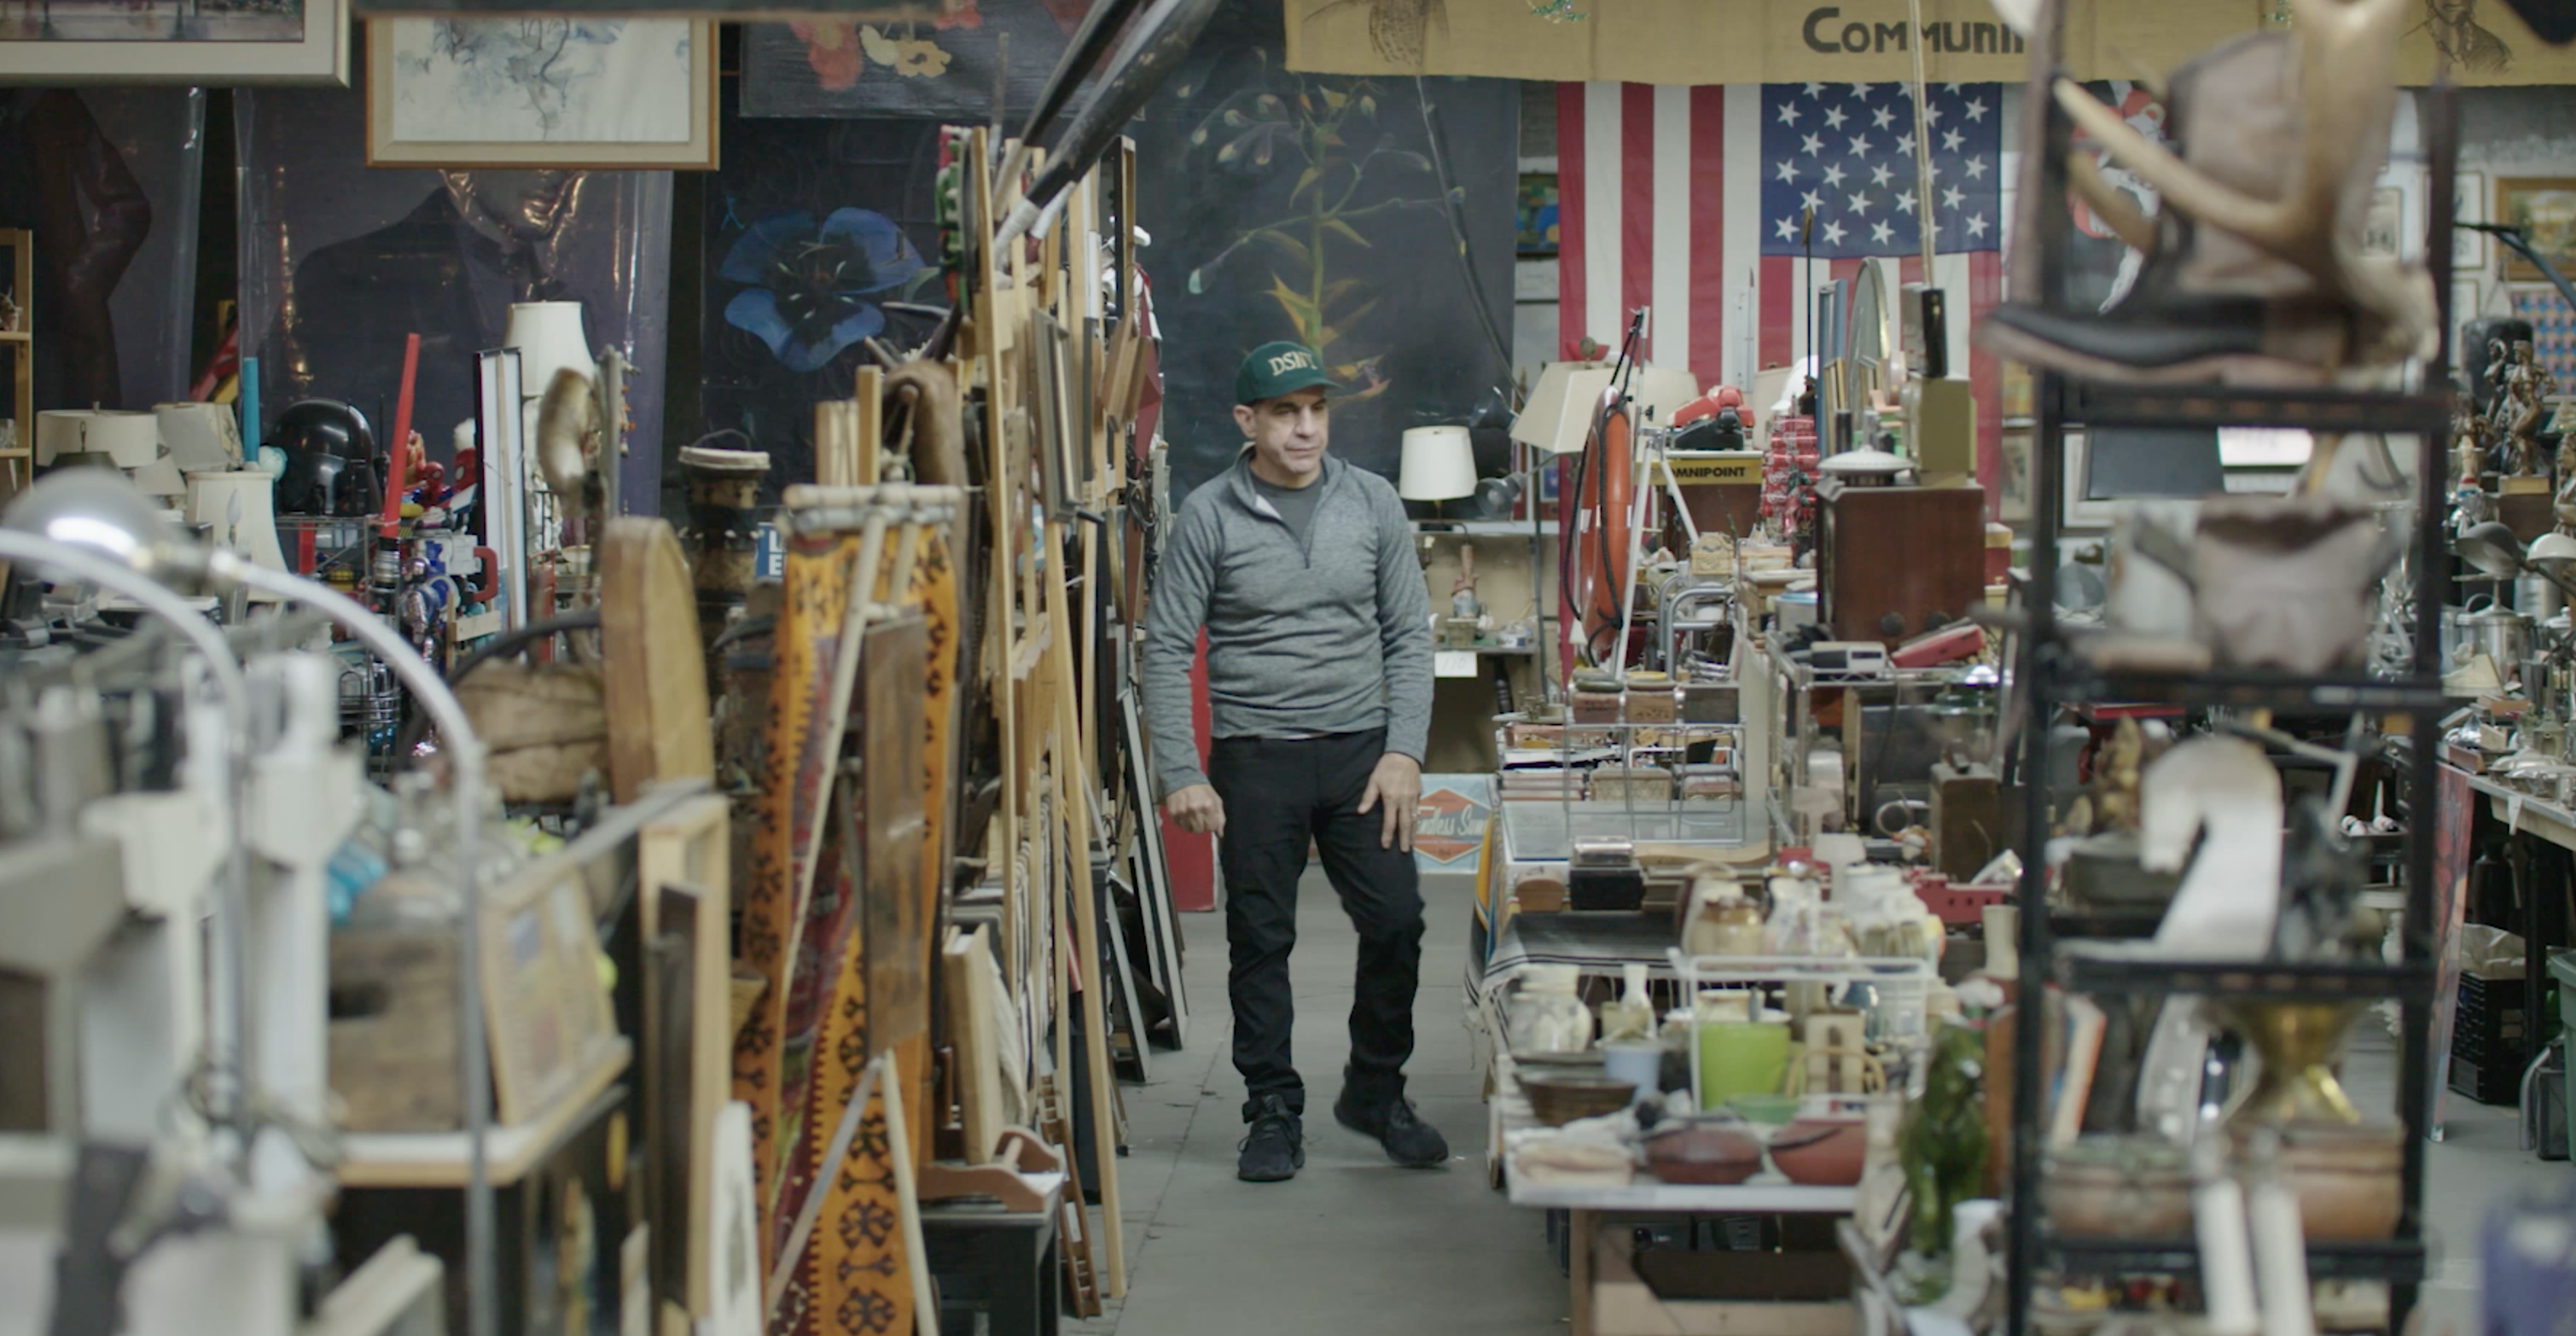 """Nelson has amassed around 45,000 items in his """"Treasures in the Trash"""" collection from over three decades as a sanitation worker."""